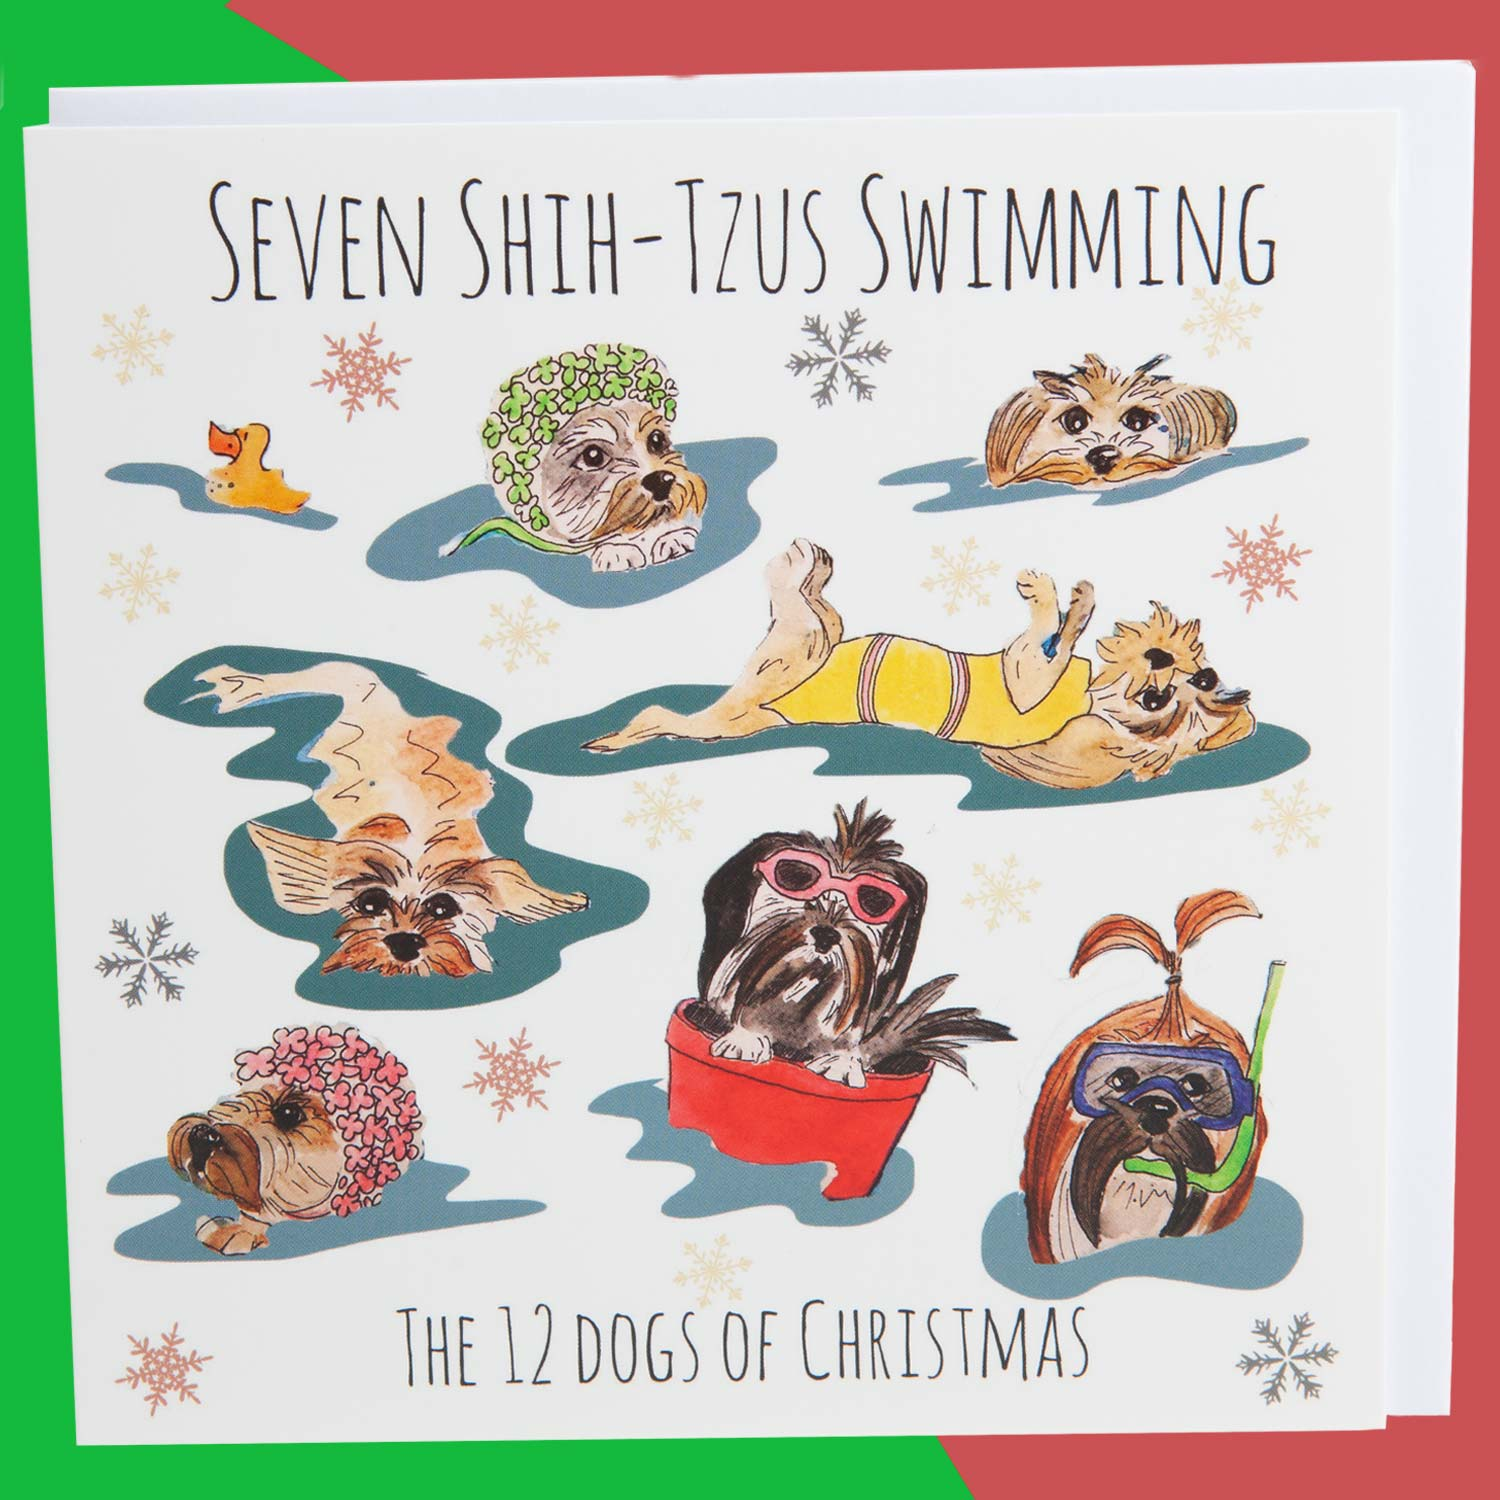 Dog Krazy Gifts - Seven Shih-Tzus Swimming - Part of the 12 Dogs of Christmas card collection available from DogKrazyGifts.co.uk